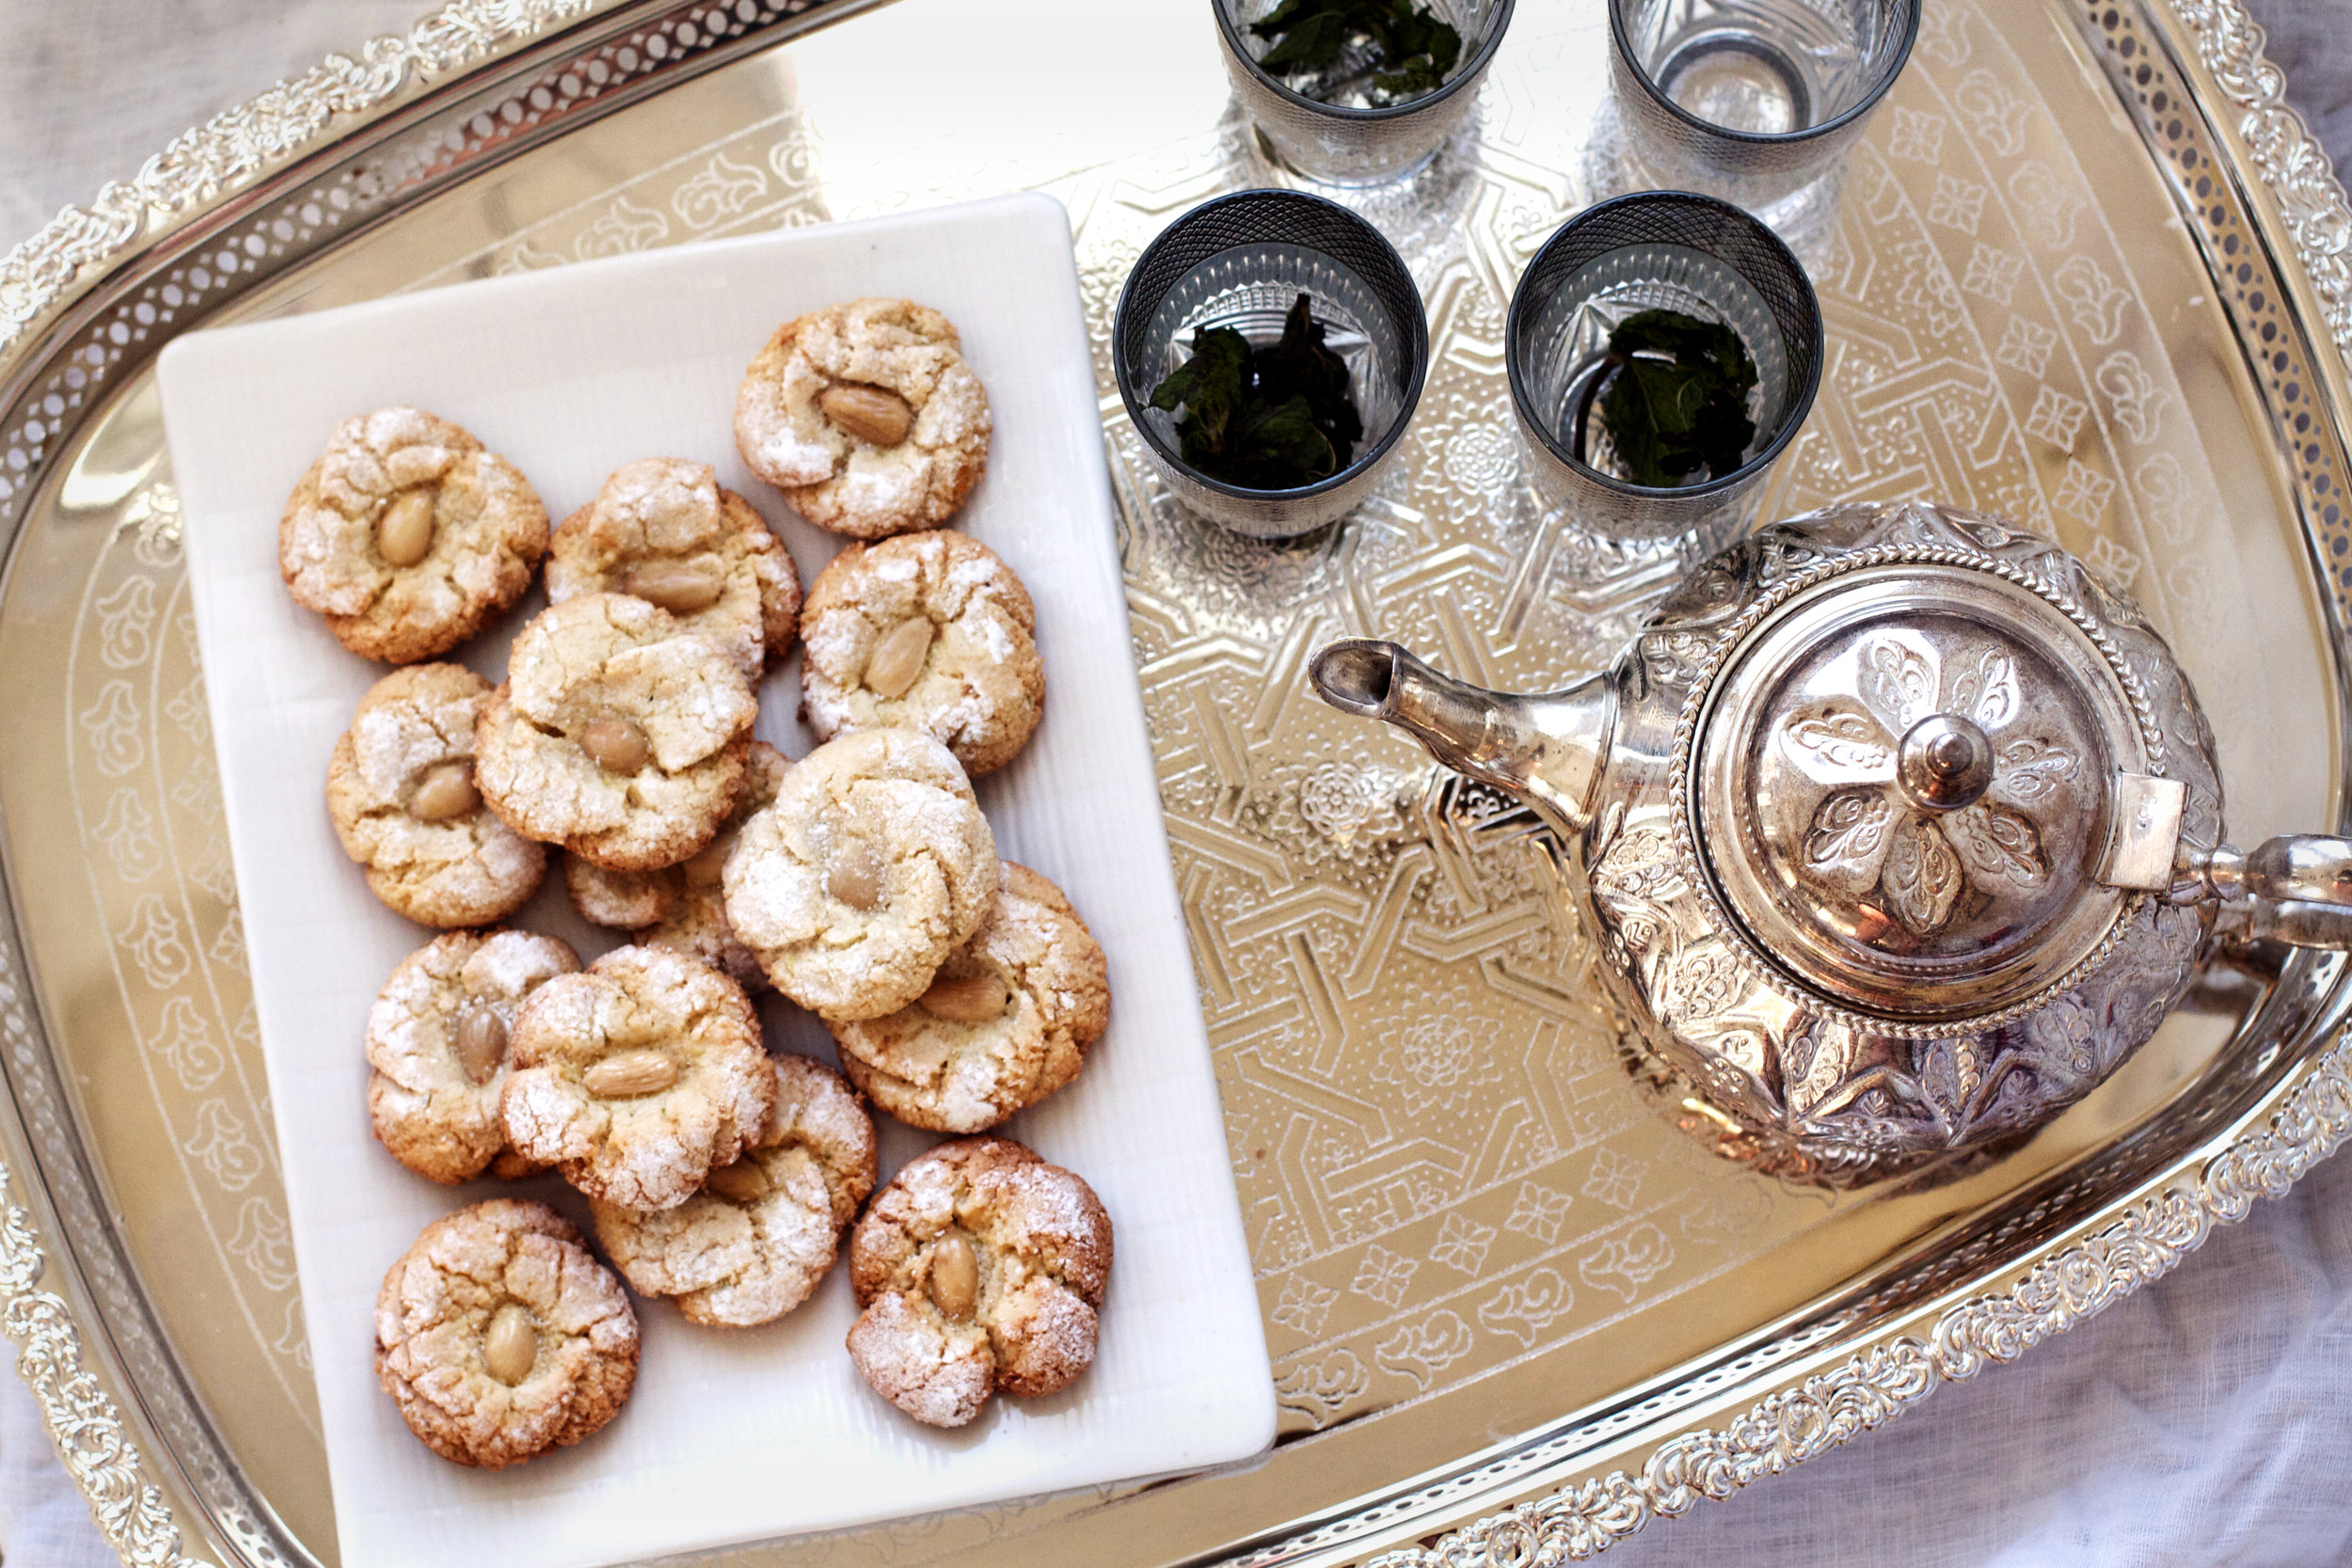 Mlouwza (aka Traditional Moroccan Almond Cookies) via Ruby Josephine